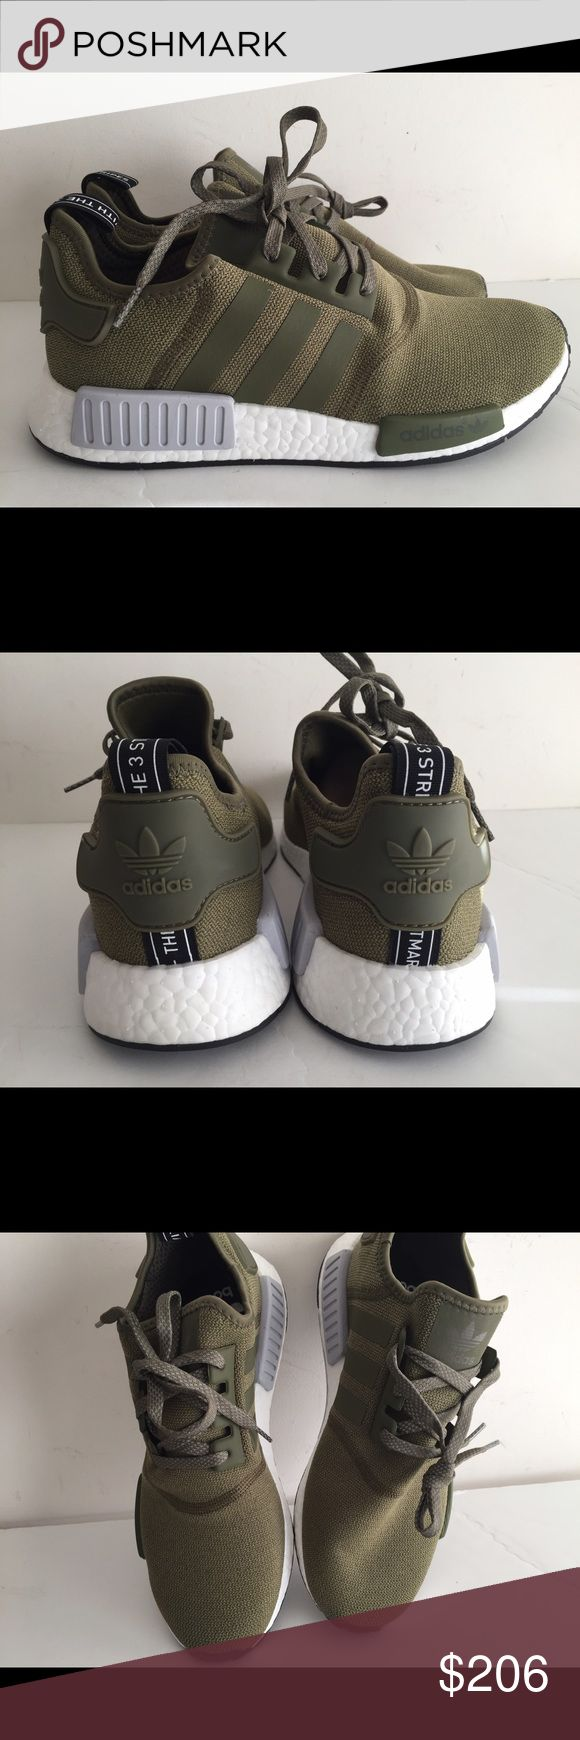 Adidas NMD R 1 Olive sz 10.5 Brand new with original box Adidas Shoes Sneakers